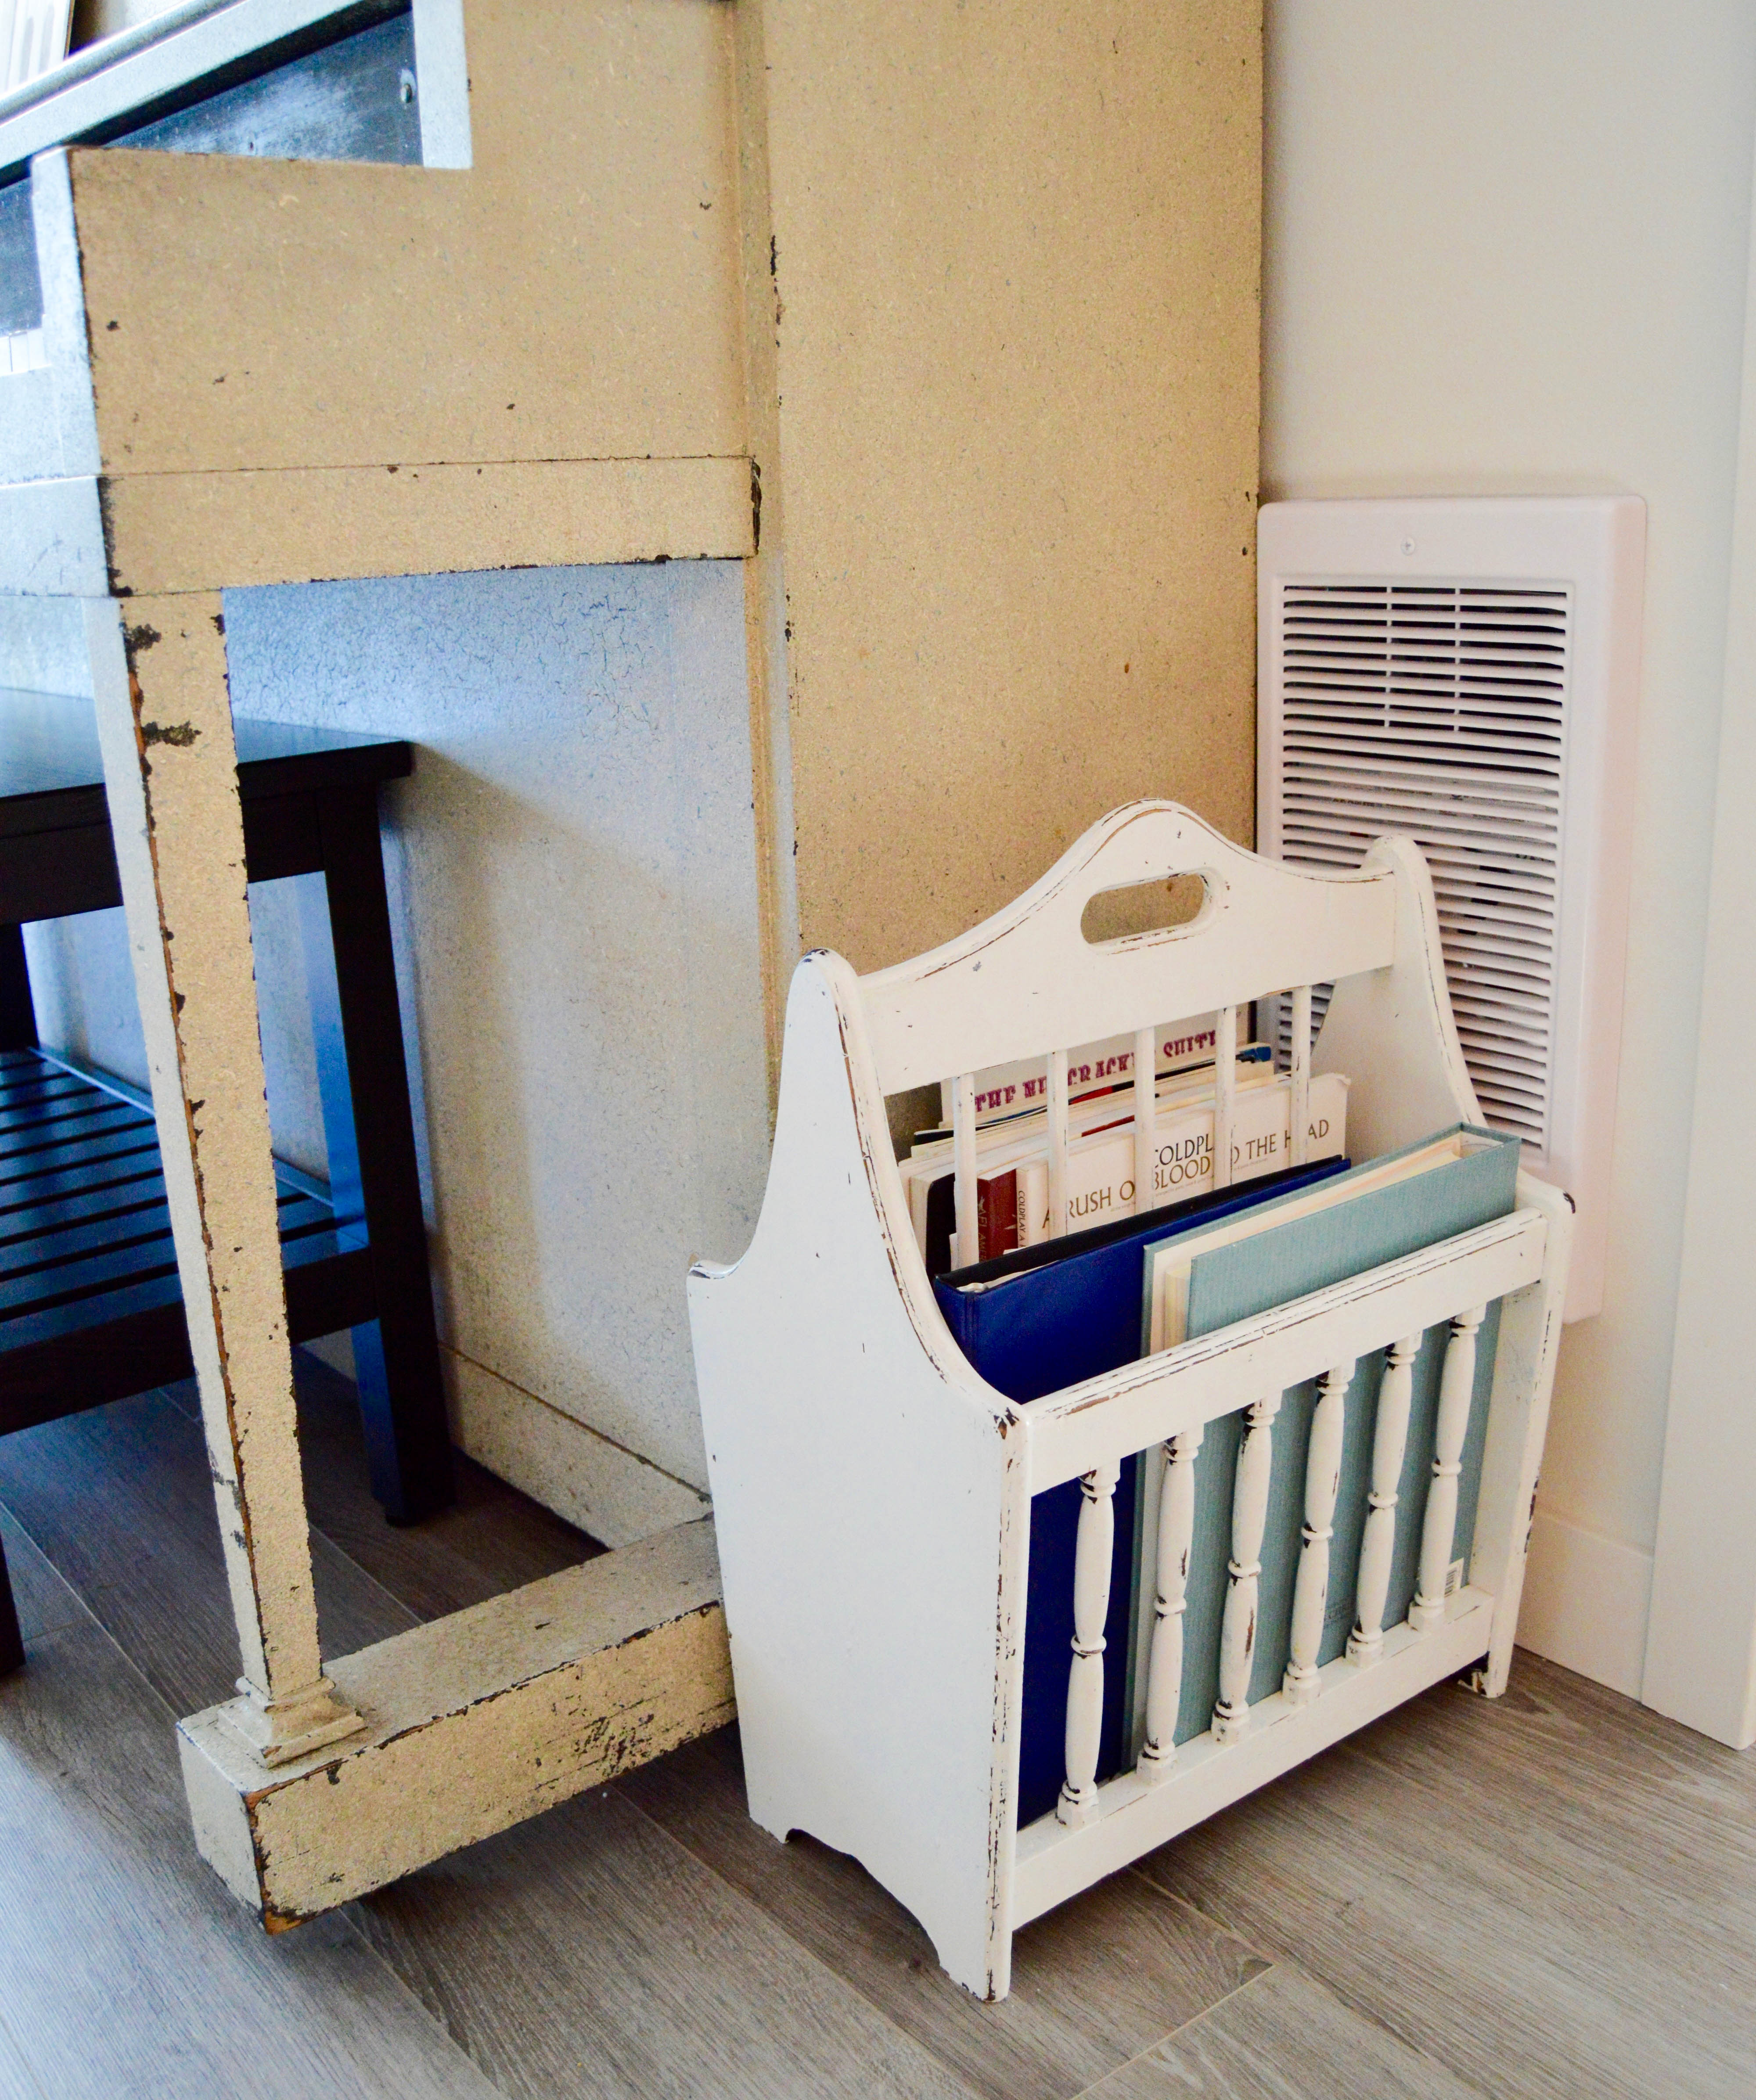 Tips for how to purge and organize your home like a pro. Organizing steps: categorizing and finding homes for things. 5 home organizing rules to live by. Music storage solution.